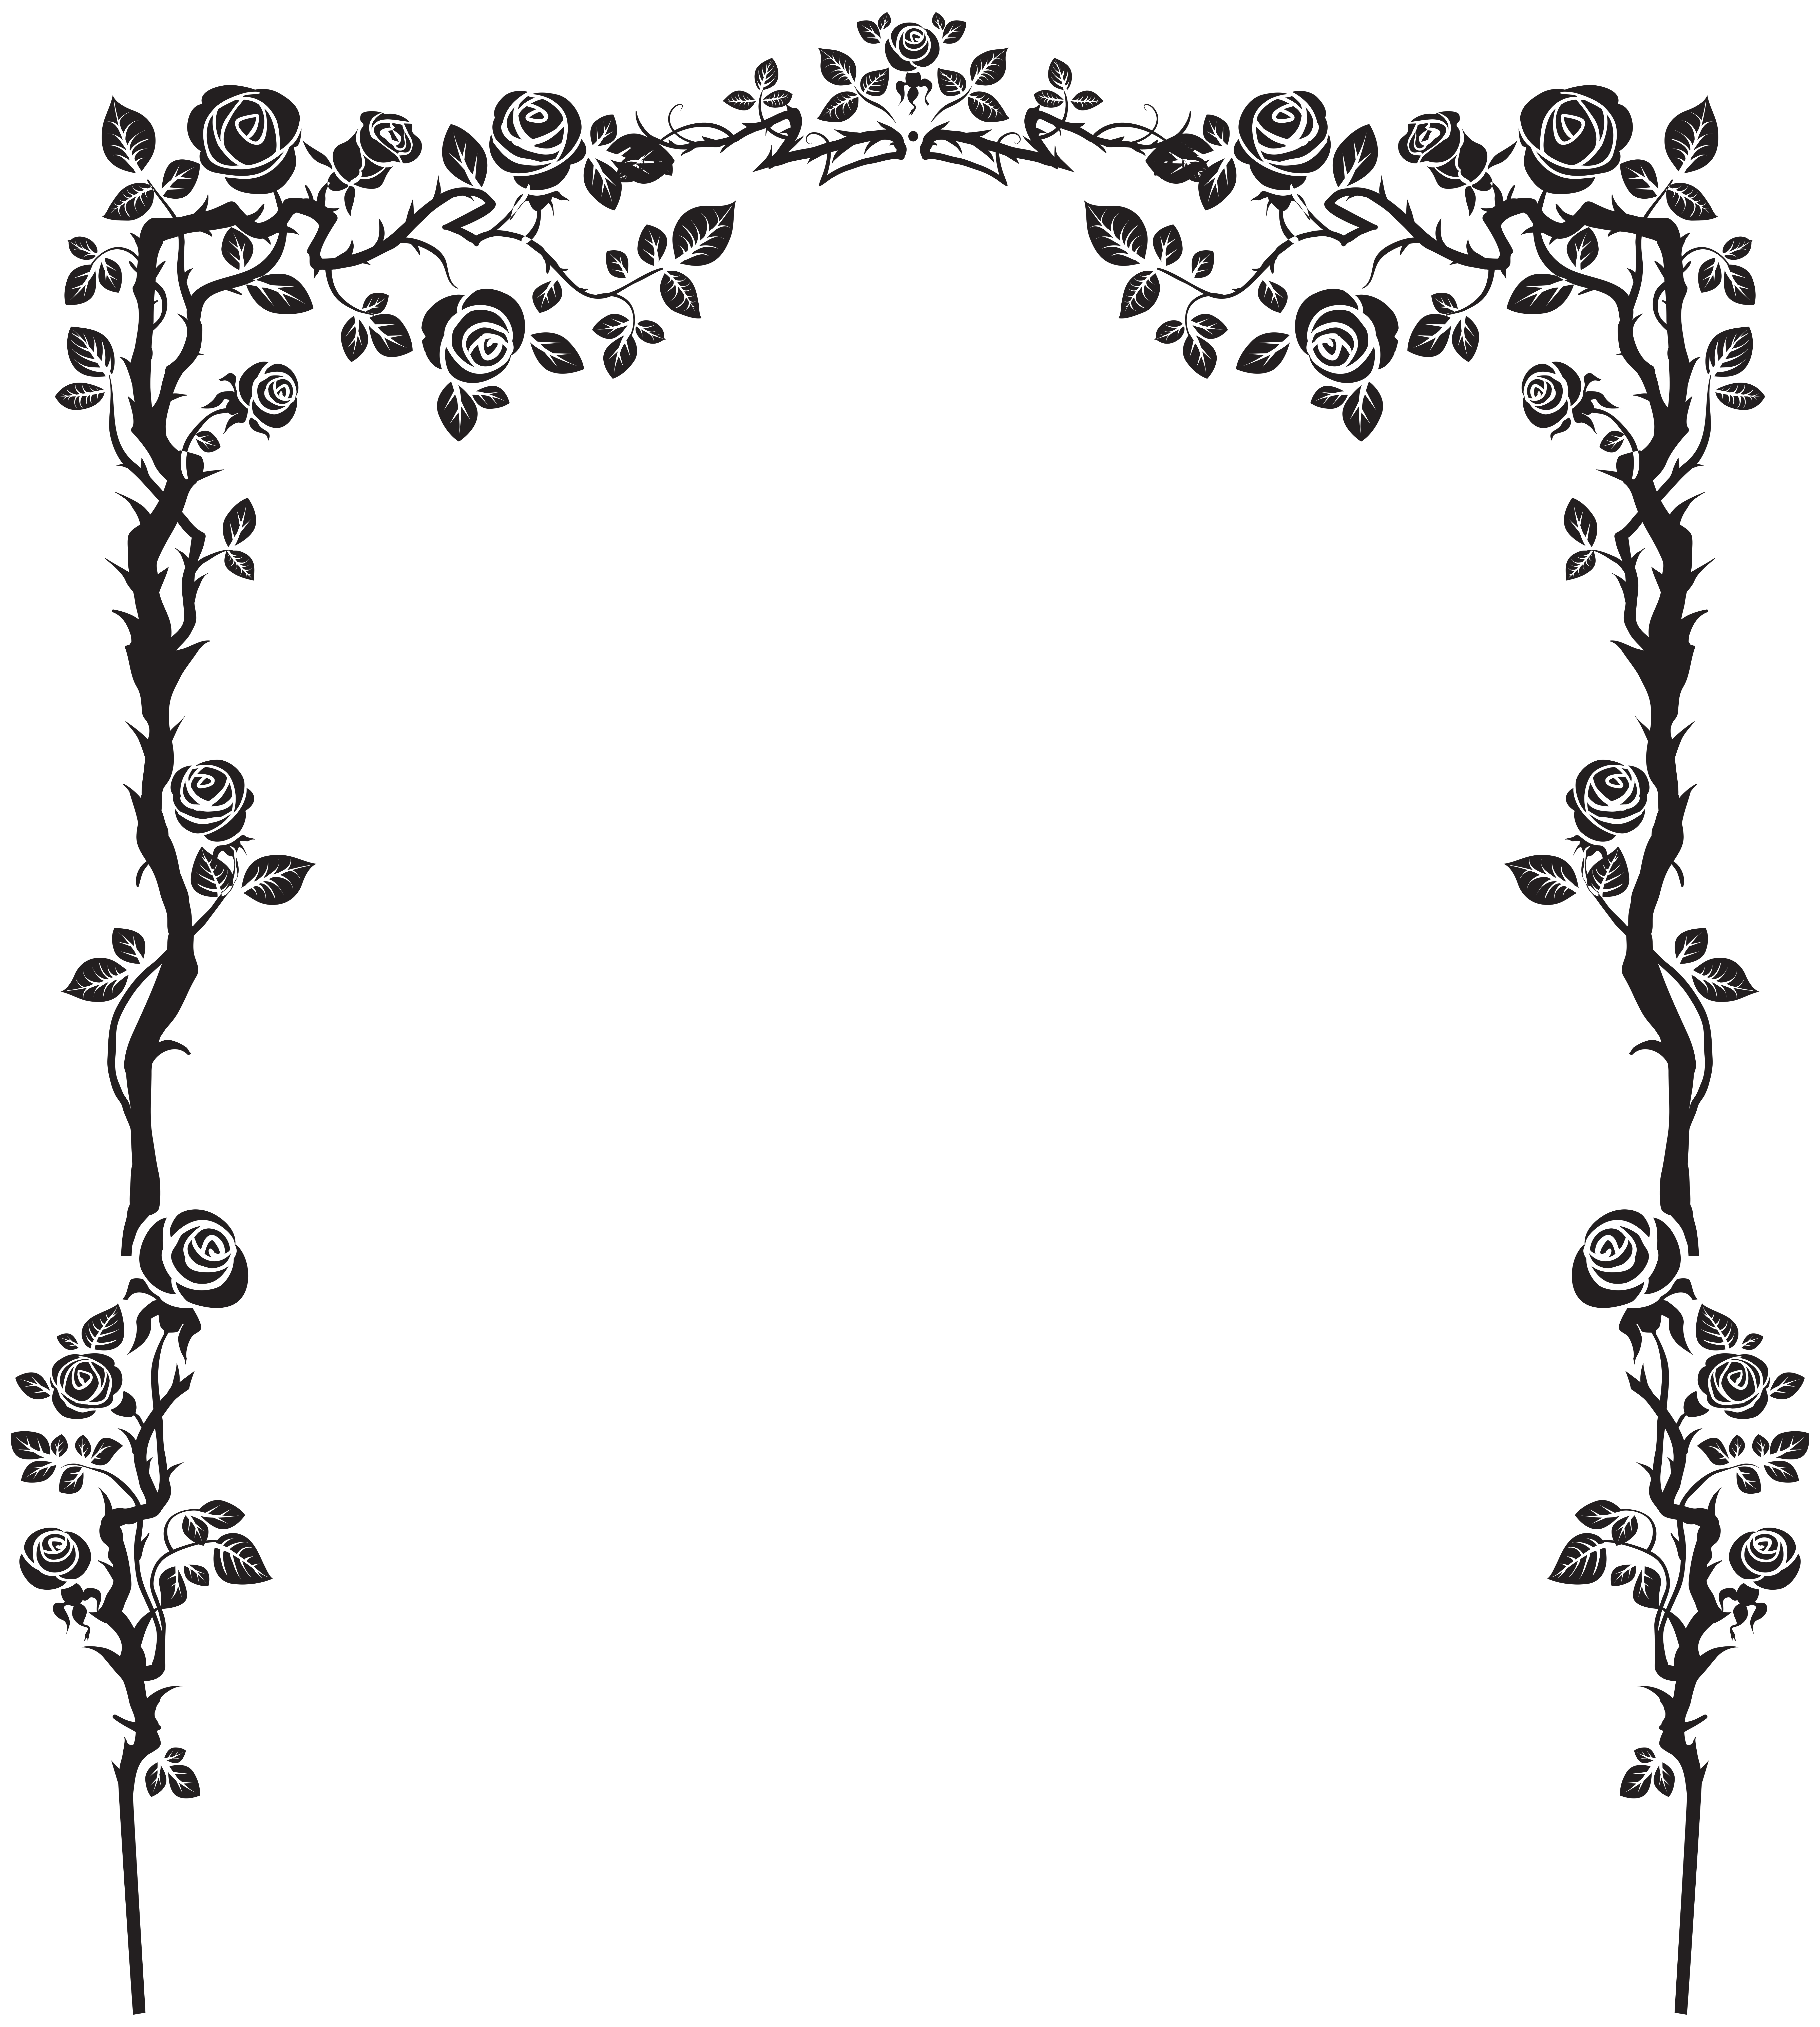 Black and white arched crown clipart png black and white library Arches Clipart Image Group (77+) png black and white library